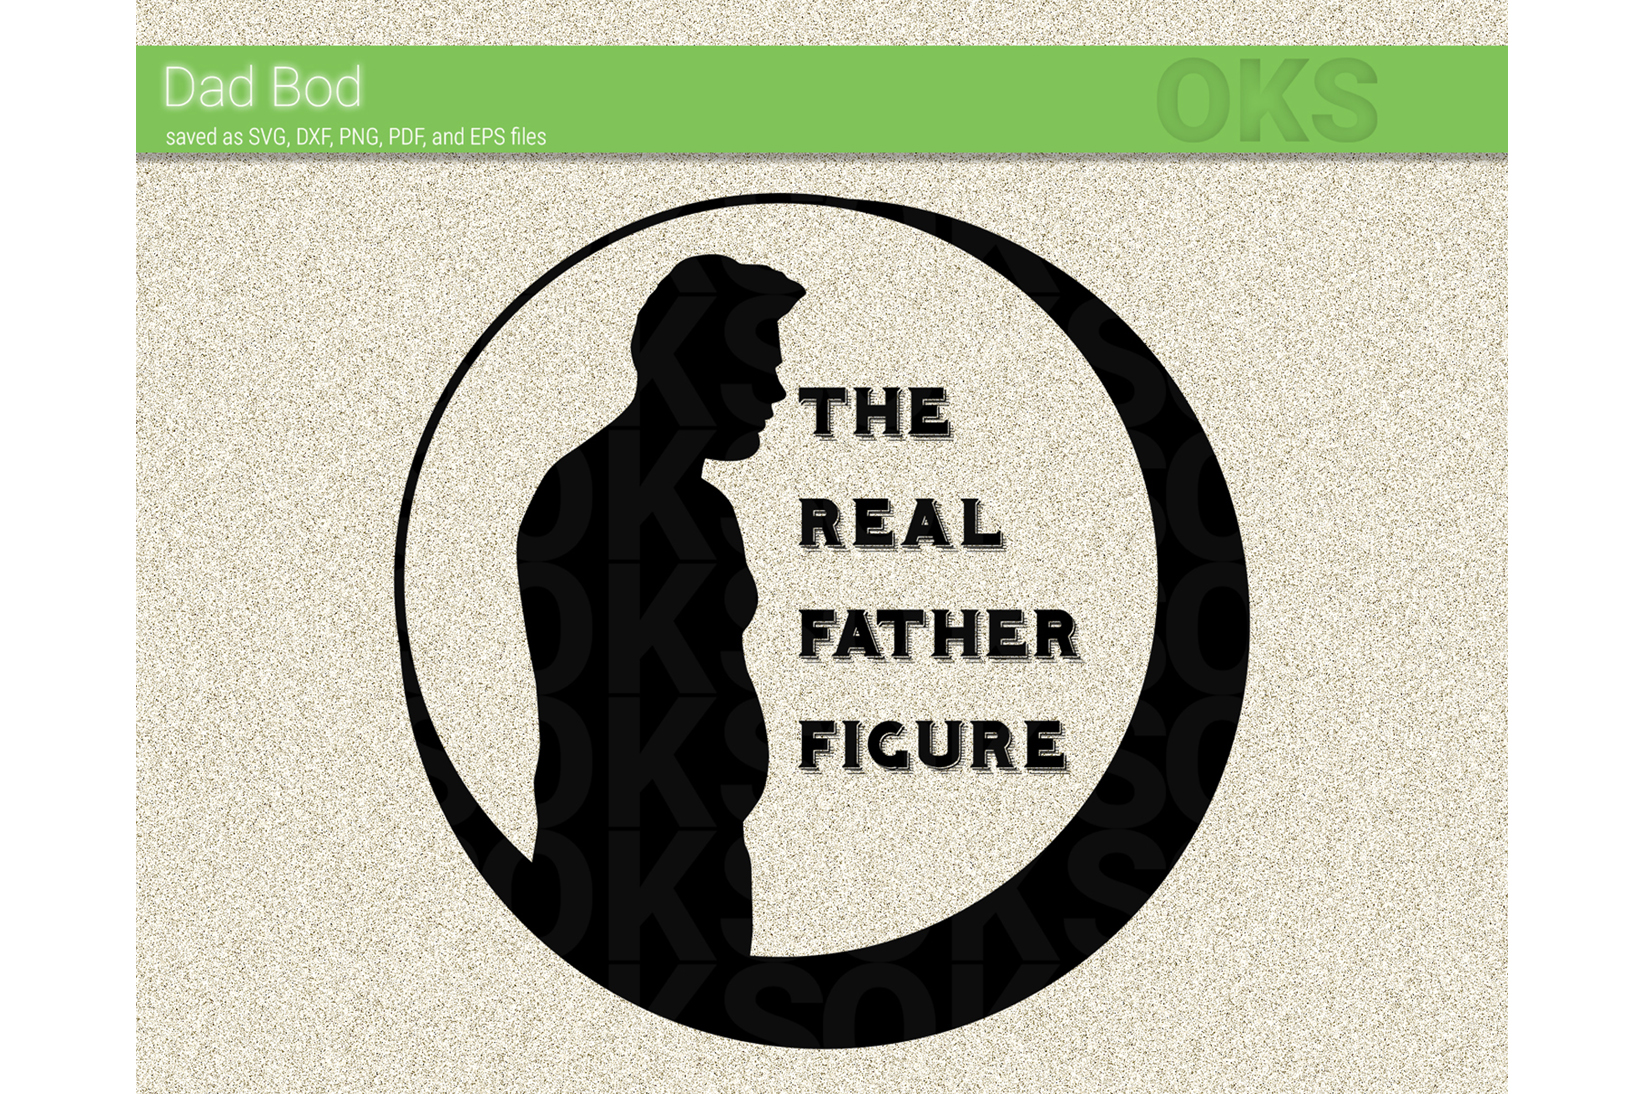 Download Free Dad Bod Svg Vector Graphic By Crafteroks Creative Fabrica for Cricut Explore, Silhouette and other cutting machines.